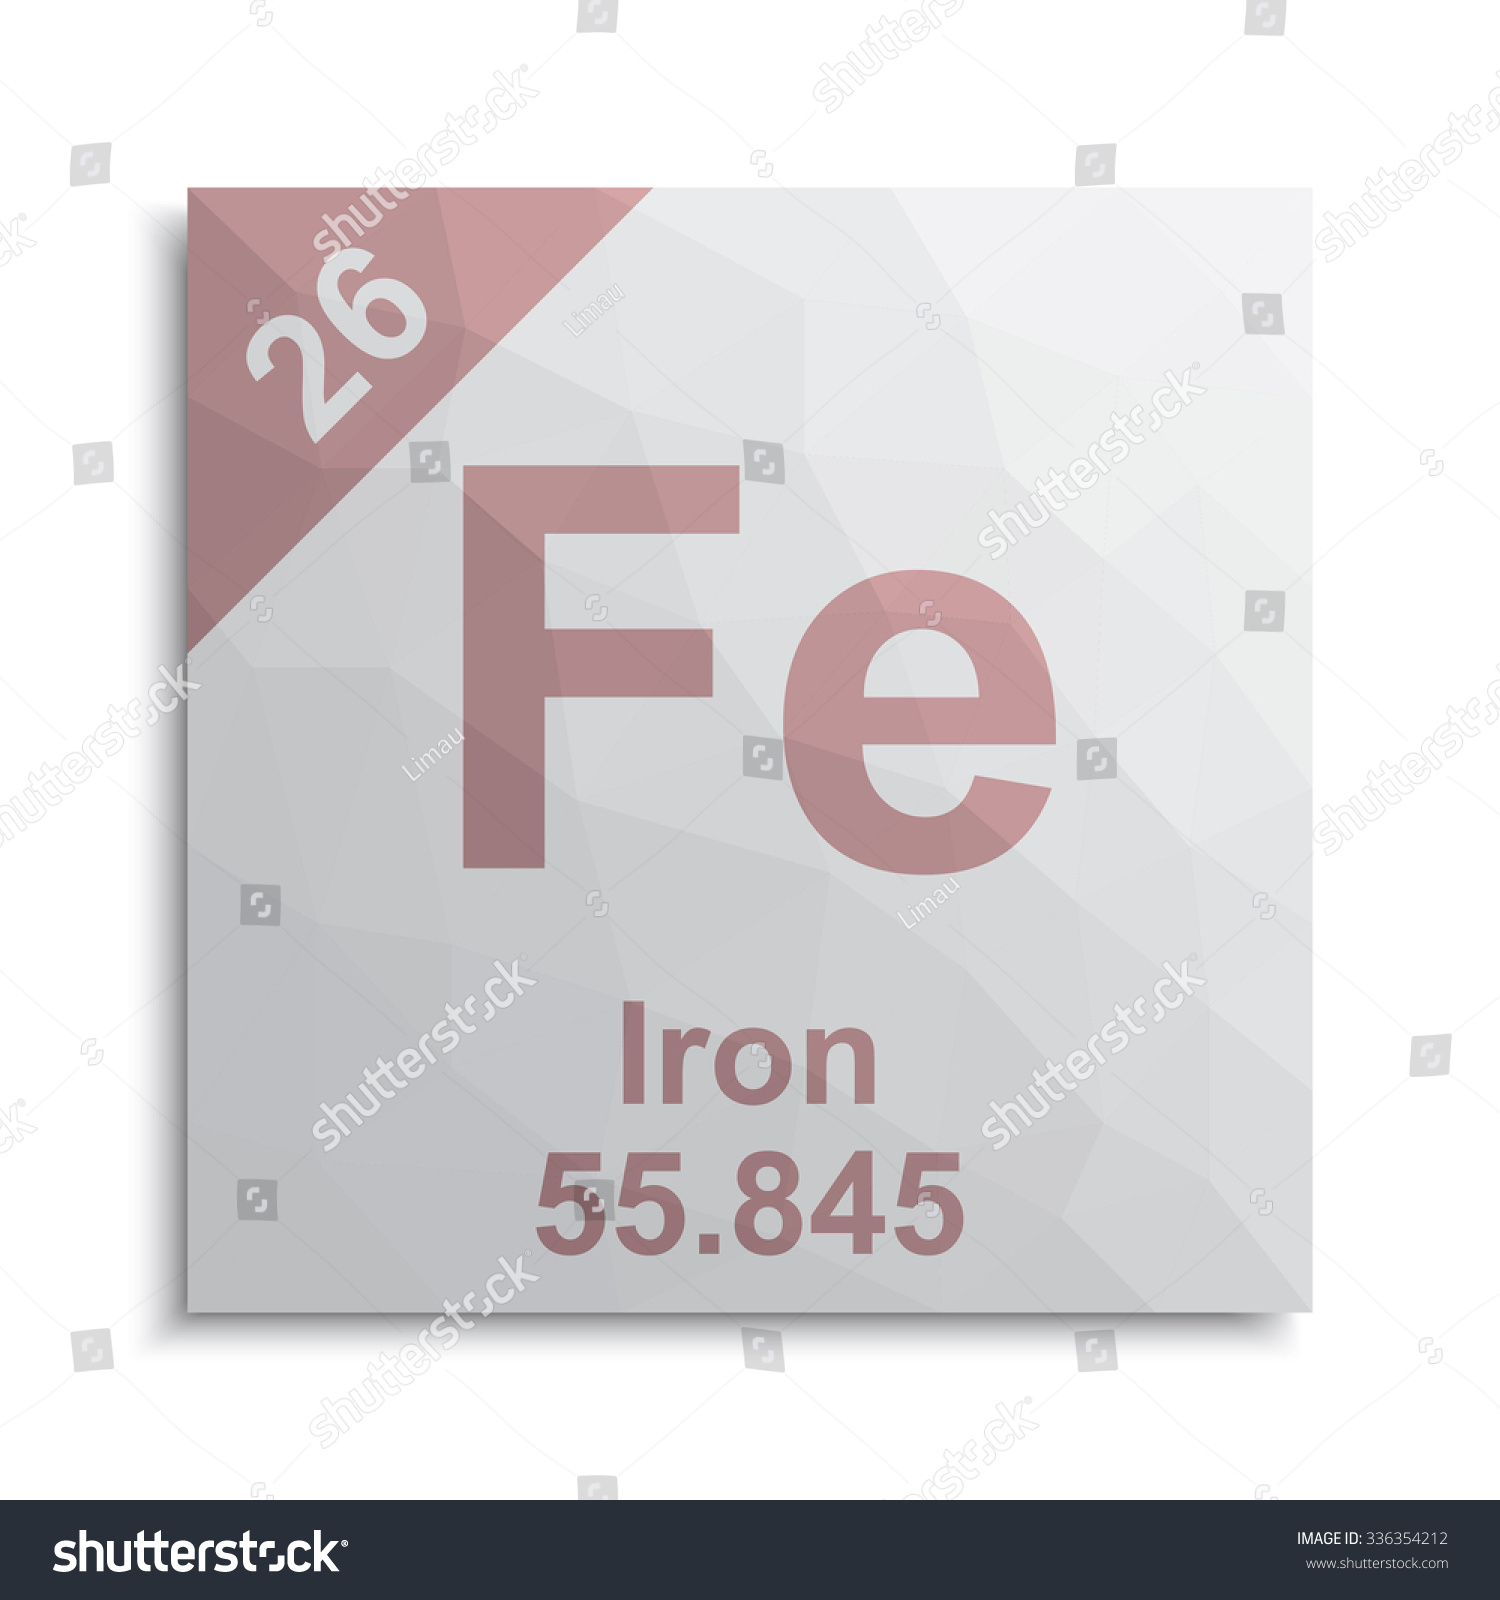 Iron element periodic table stock vector 336354212 shutterstock iron element periodic table gamestrikefo Choice Image